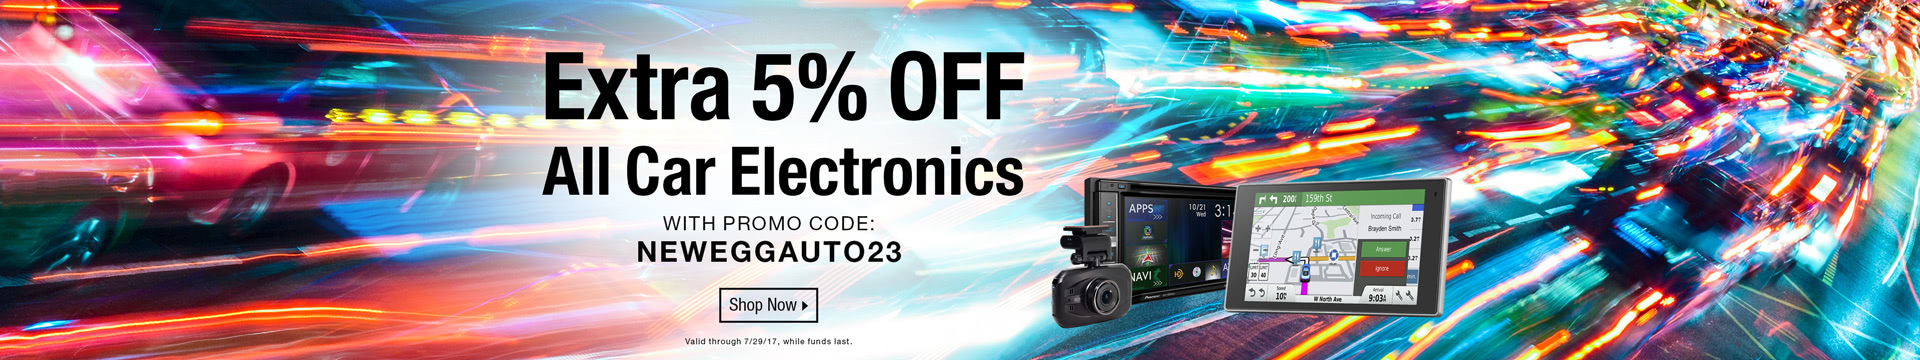 Extra 5% off All Car Electronics with Promo Code